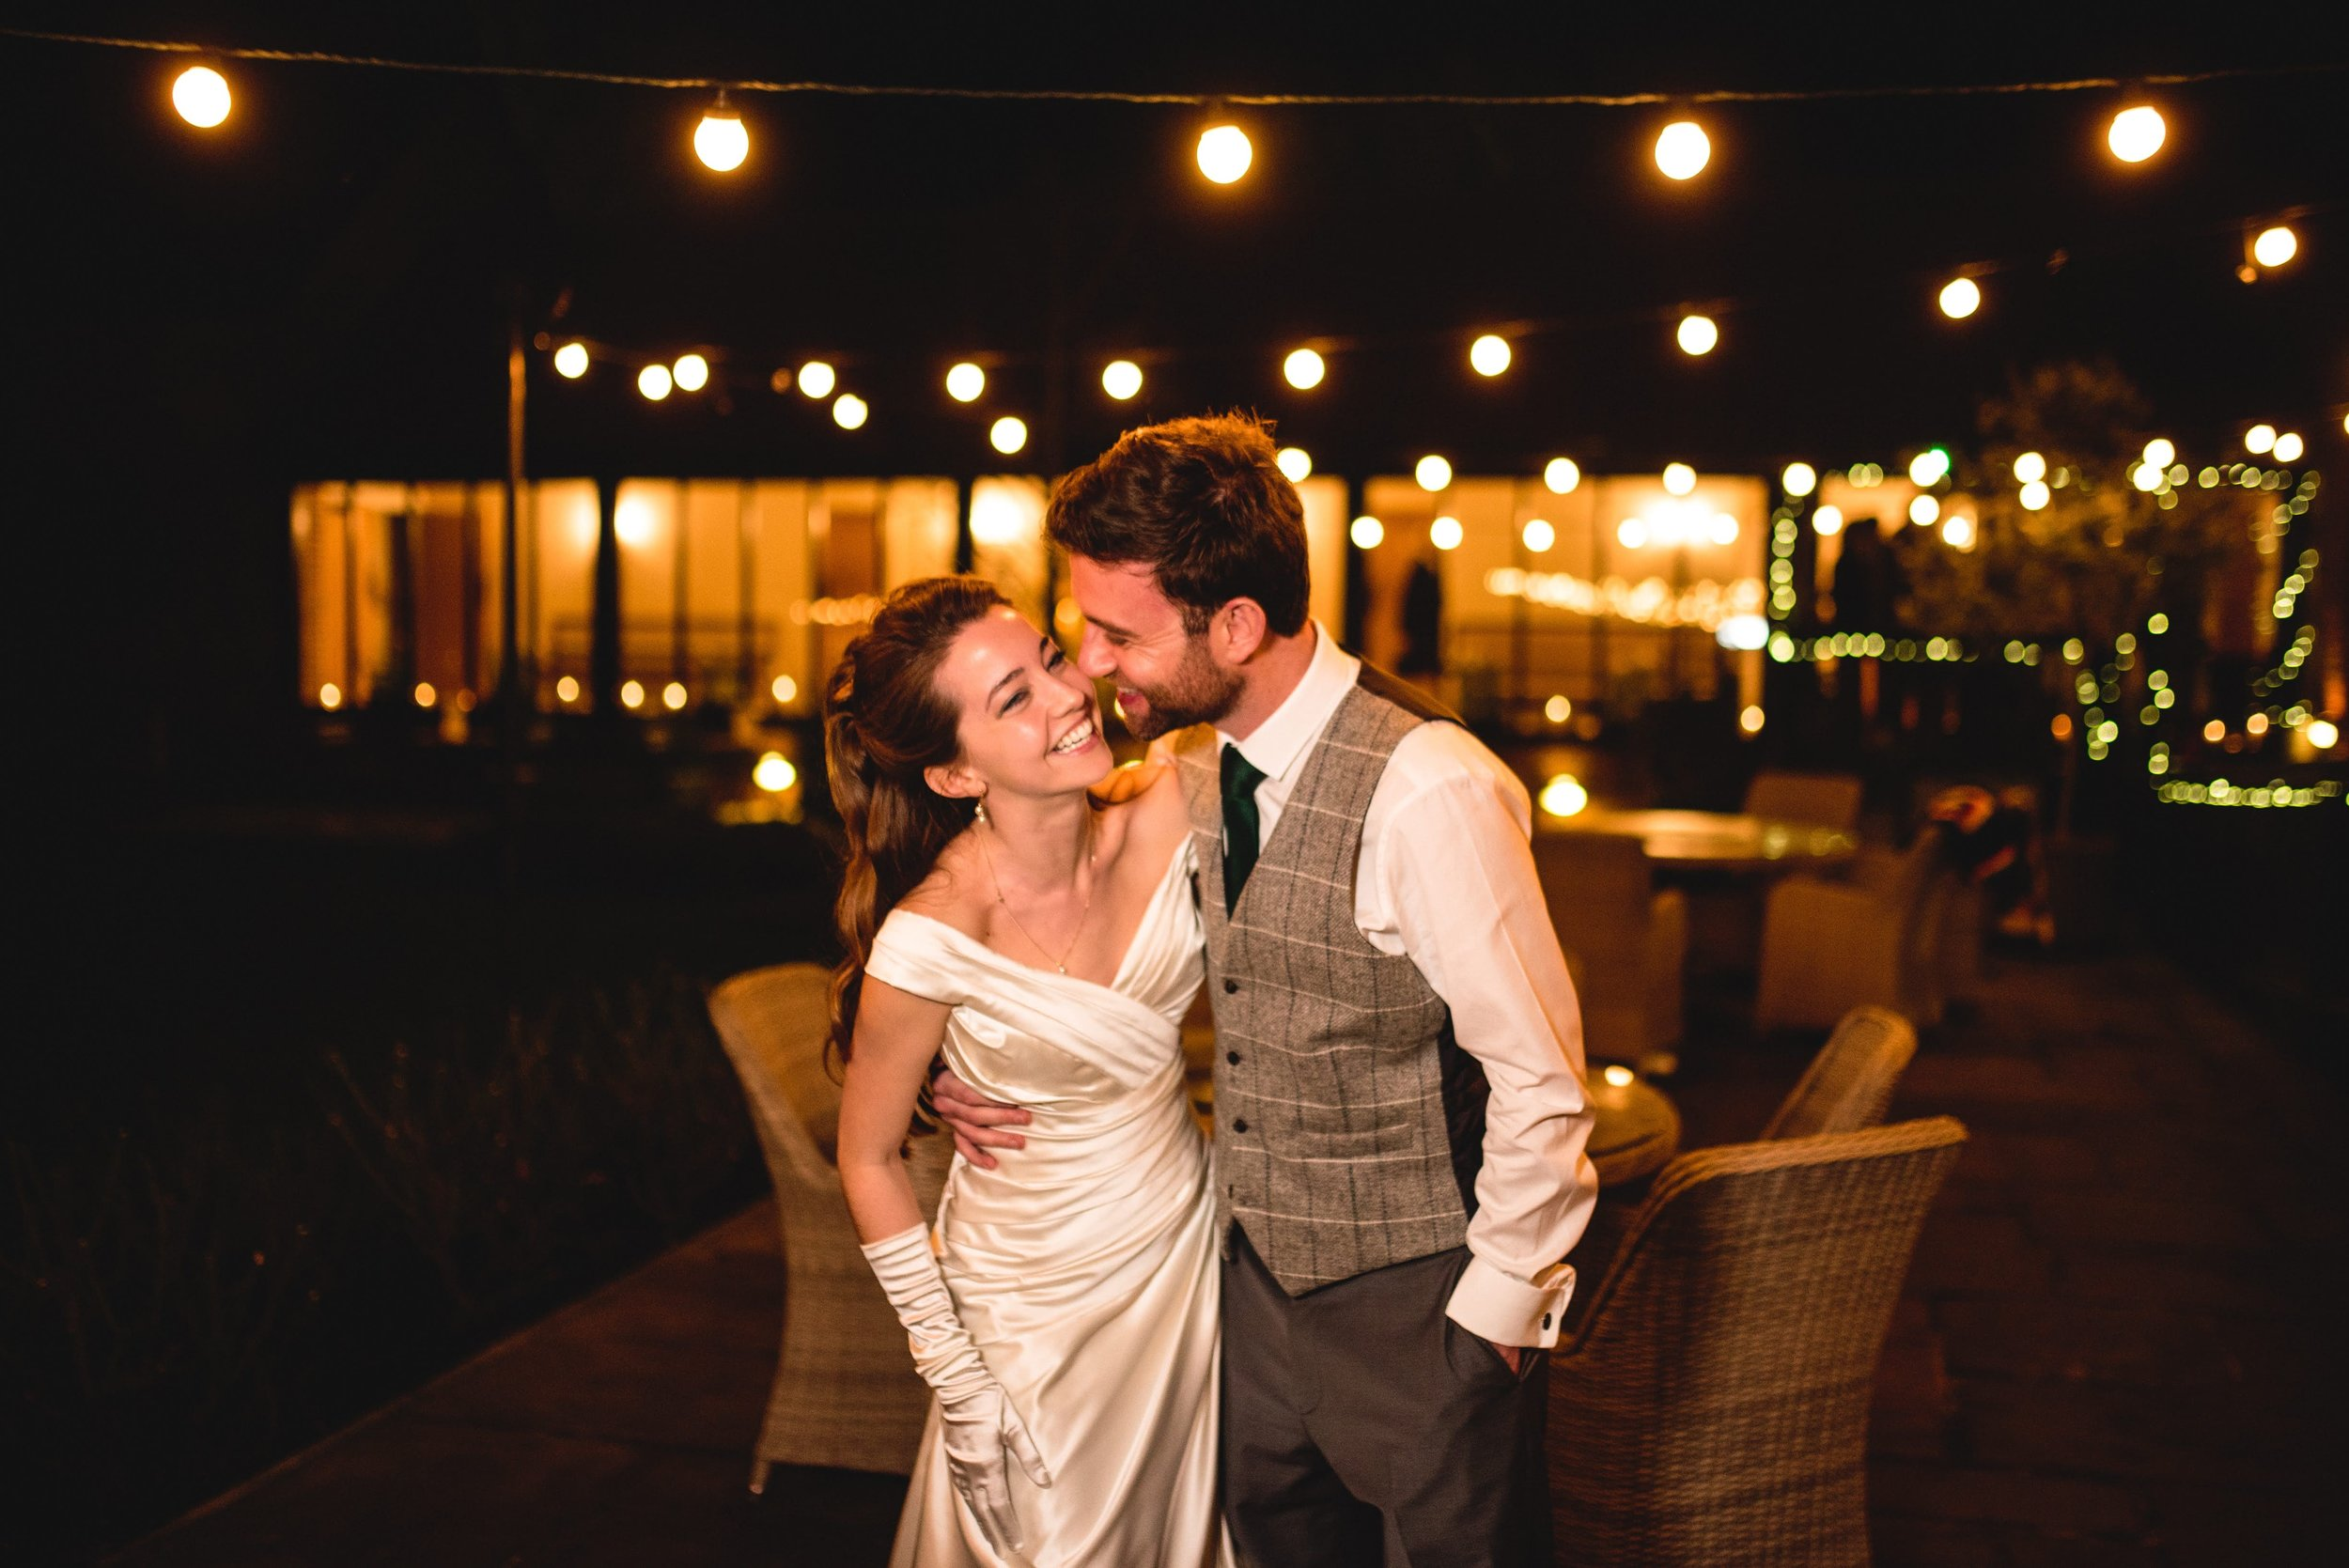 Julia and Ciaran-Colour-16February2019-560-min.jpg